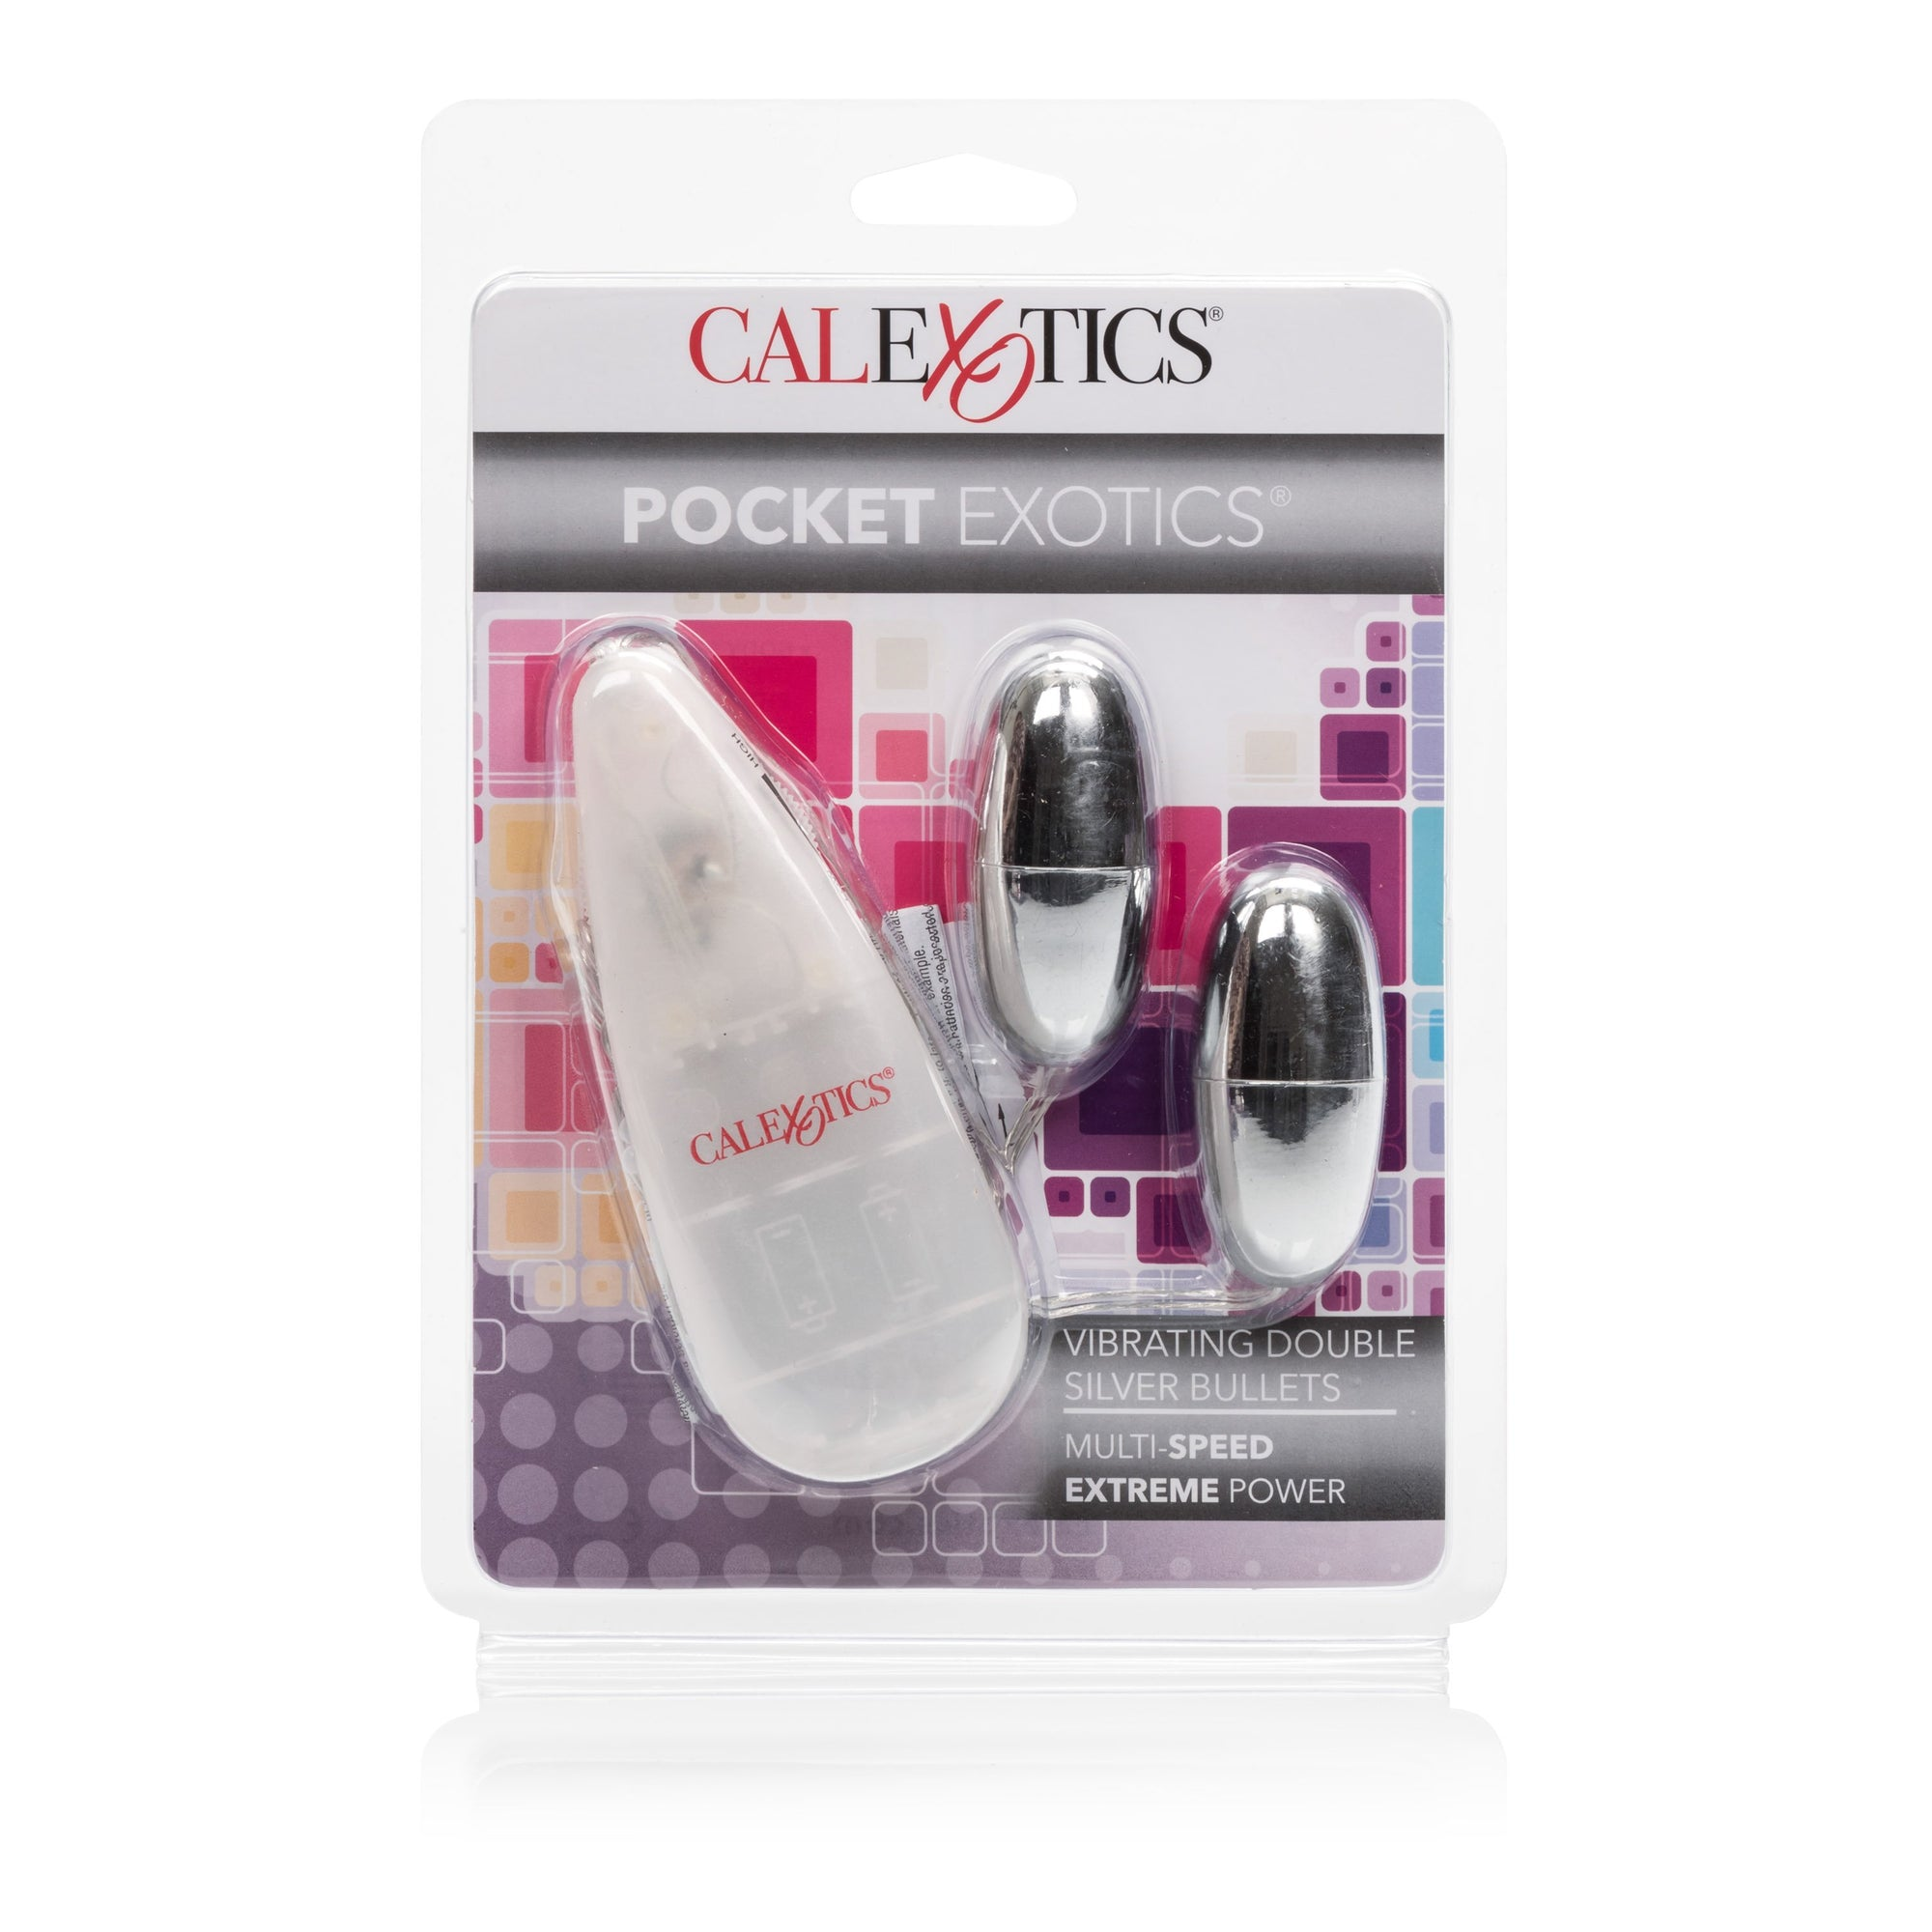 California Exotics - Pocket Exotics Vibrating Double Silver Bullet Vibrator  (White) Wired Remote Control